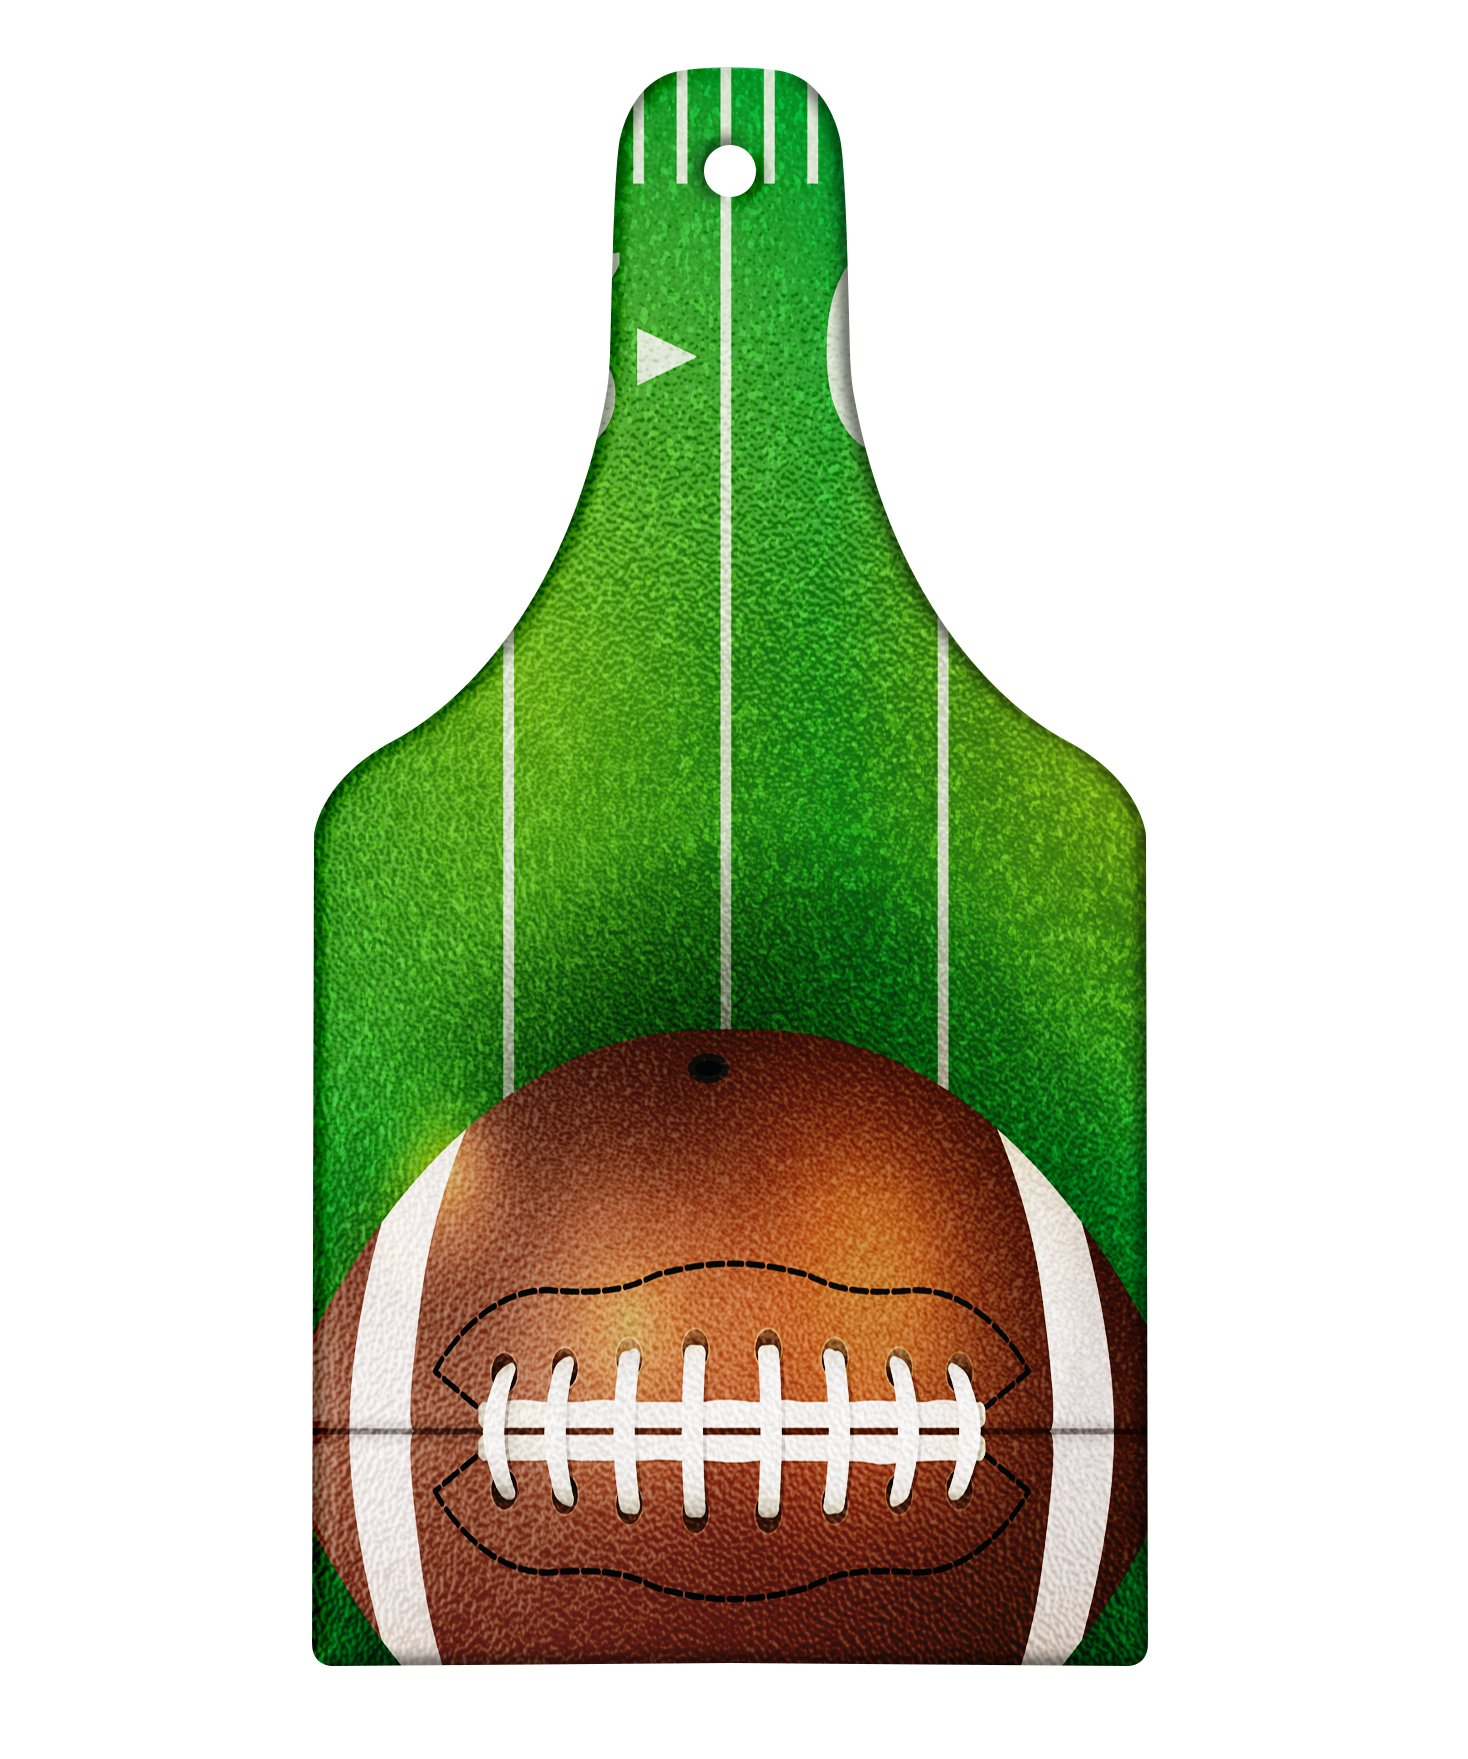 Lunarable Boy's Room Cutting Board, American Football Field and Ball Realistic Vivid Illustration College, Decorative Tempered Glass Cutting and Serving Board, Wine Bottle Shape, Green Brown White by Lunarable (Image #1)